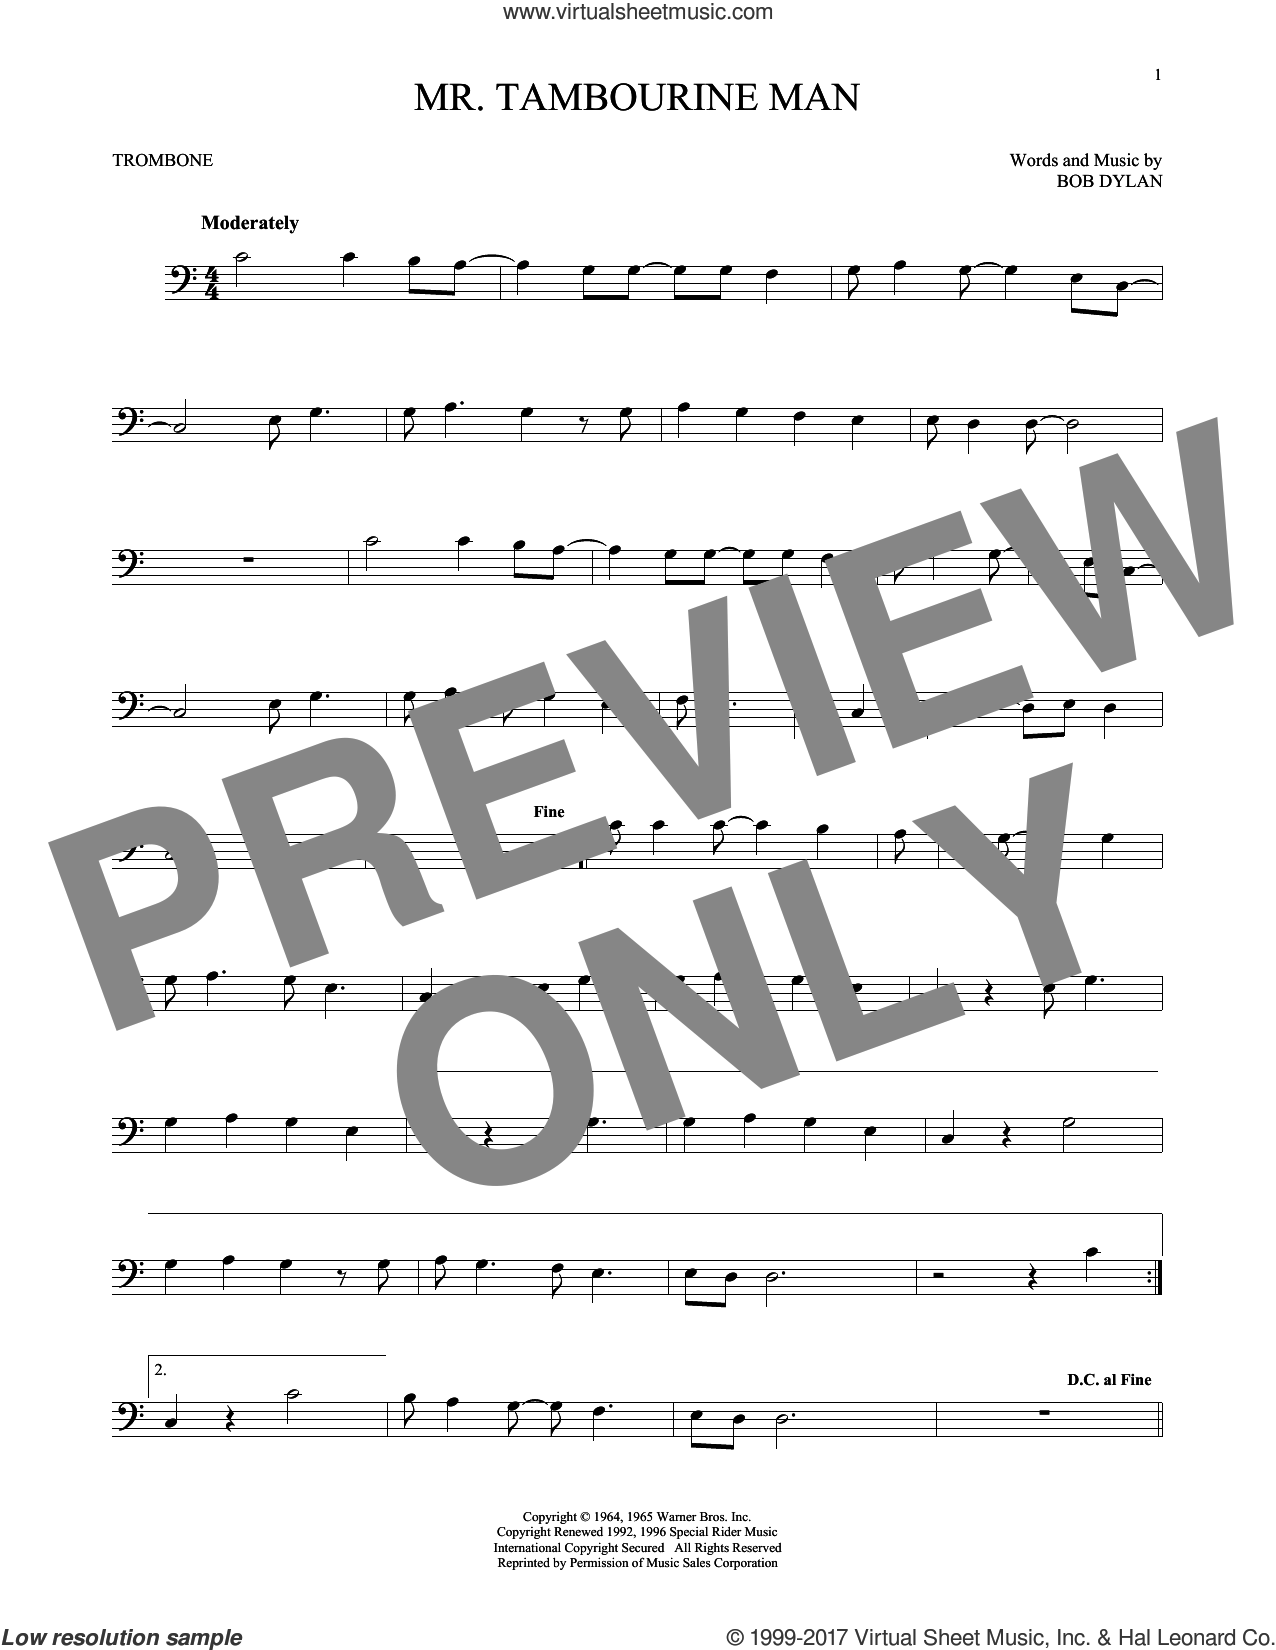 Mr. Tambourine Man sheet music for trombone solo by Bob Dylan, intermediate skill level